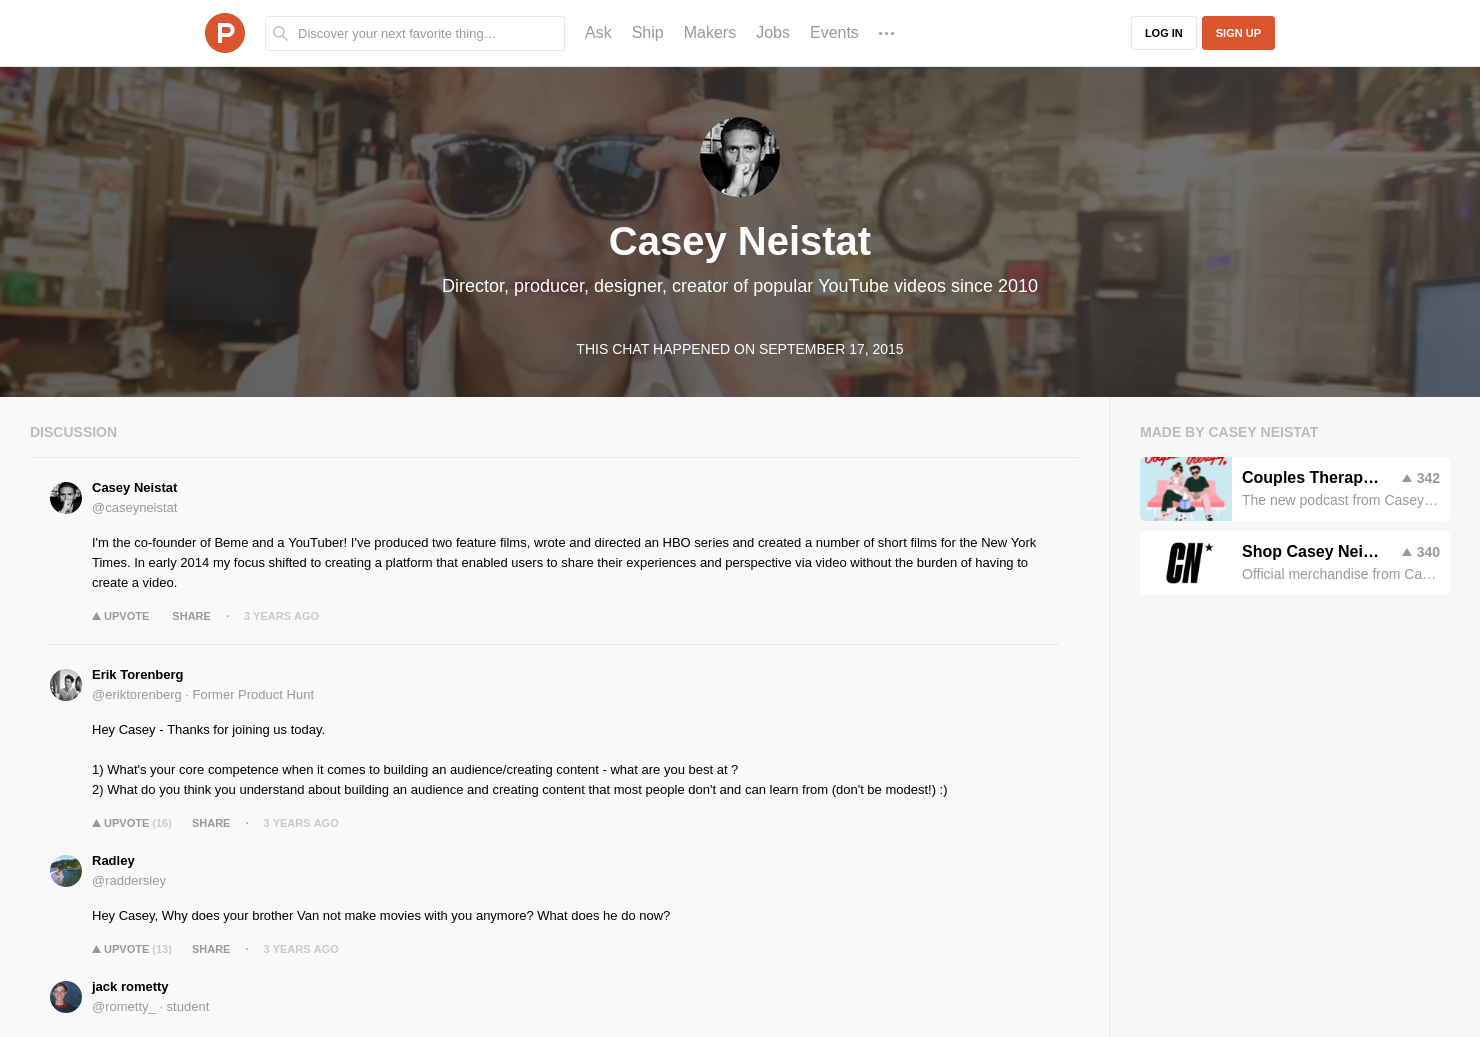 eeb0d31f20 Casey Neistat LIVE Chat on Product Hunt